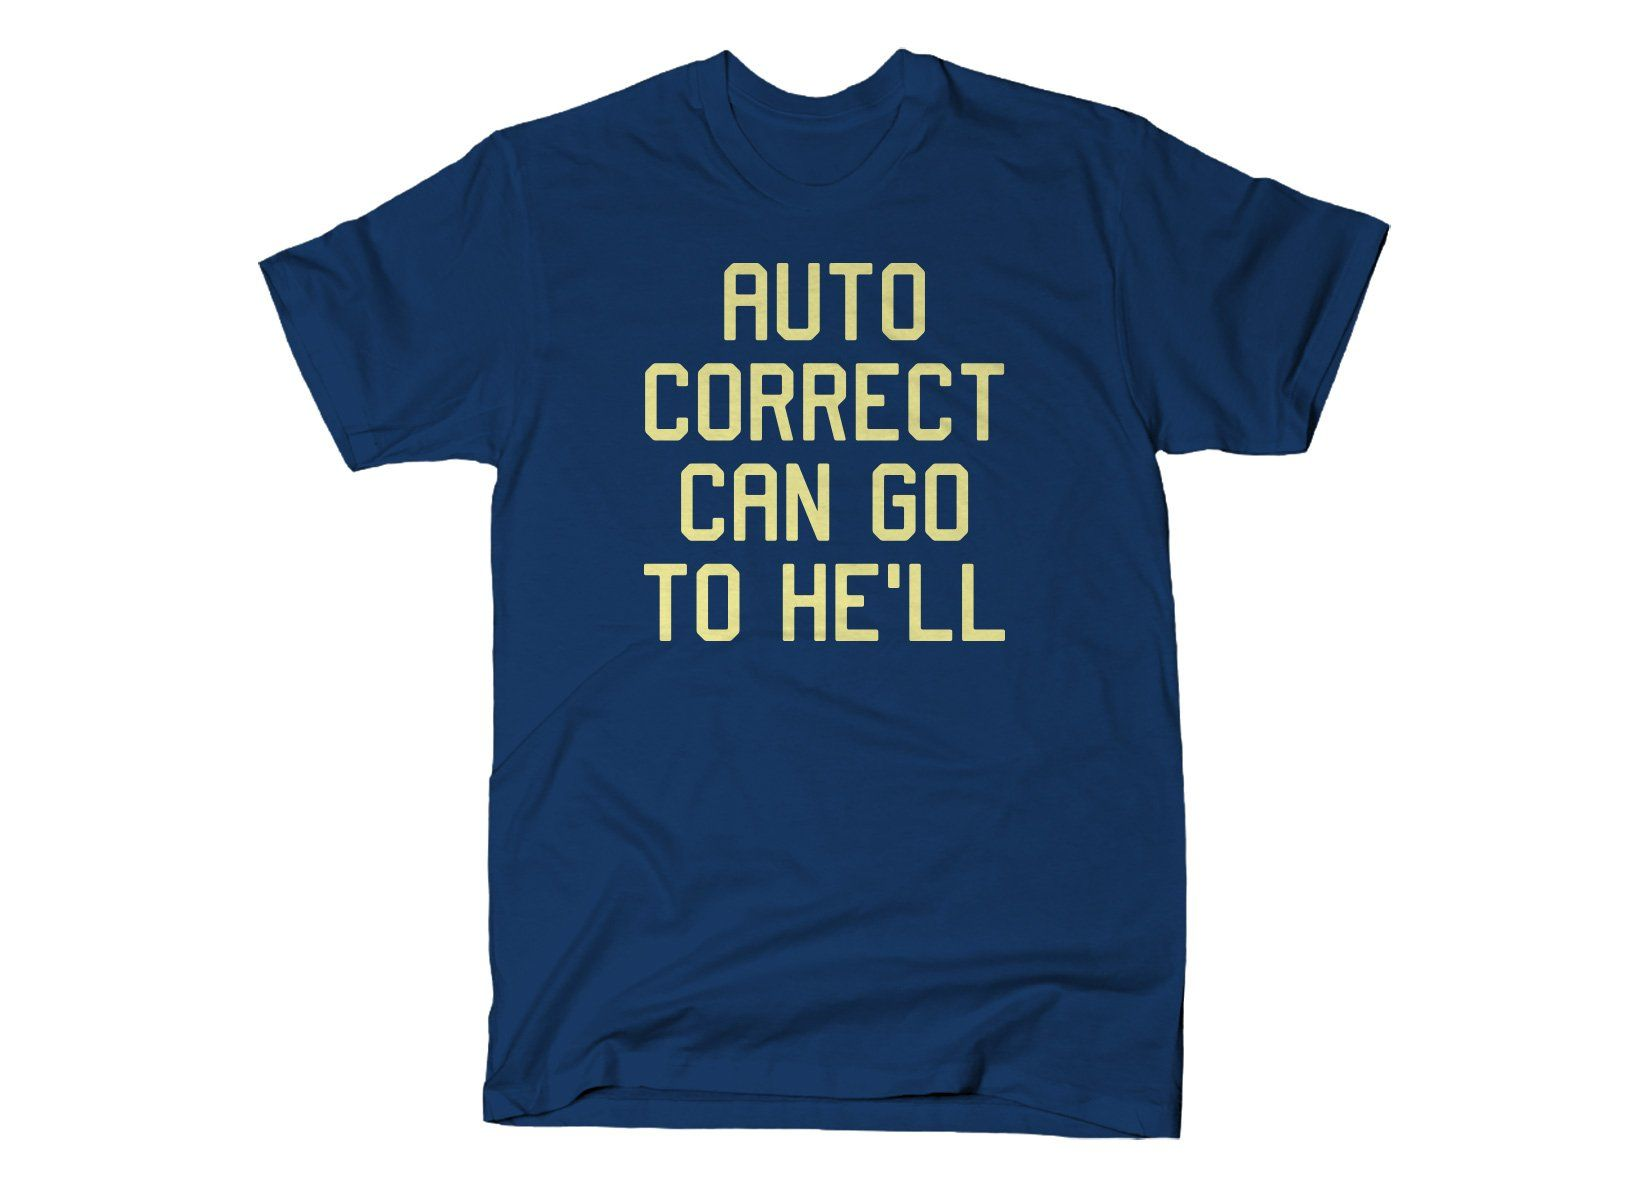 48d04ce6a Auto Correct Can Go To He'll T-Shirt | Funny Pictures - Life ...